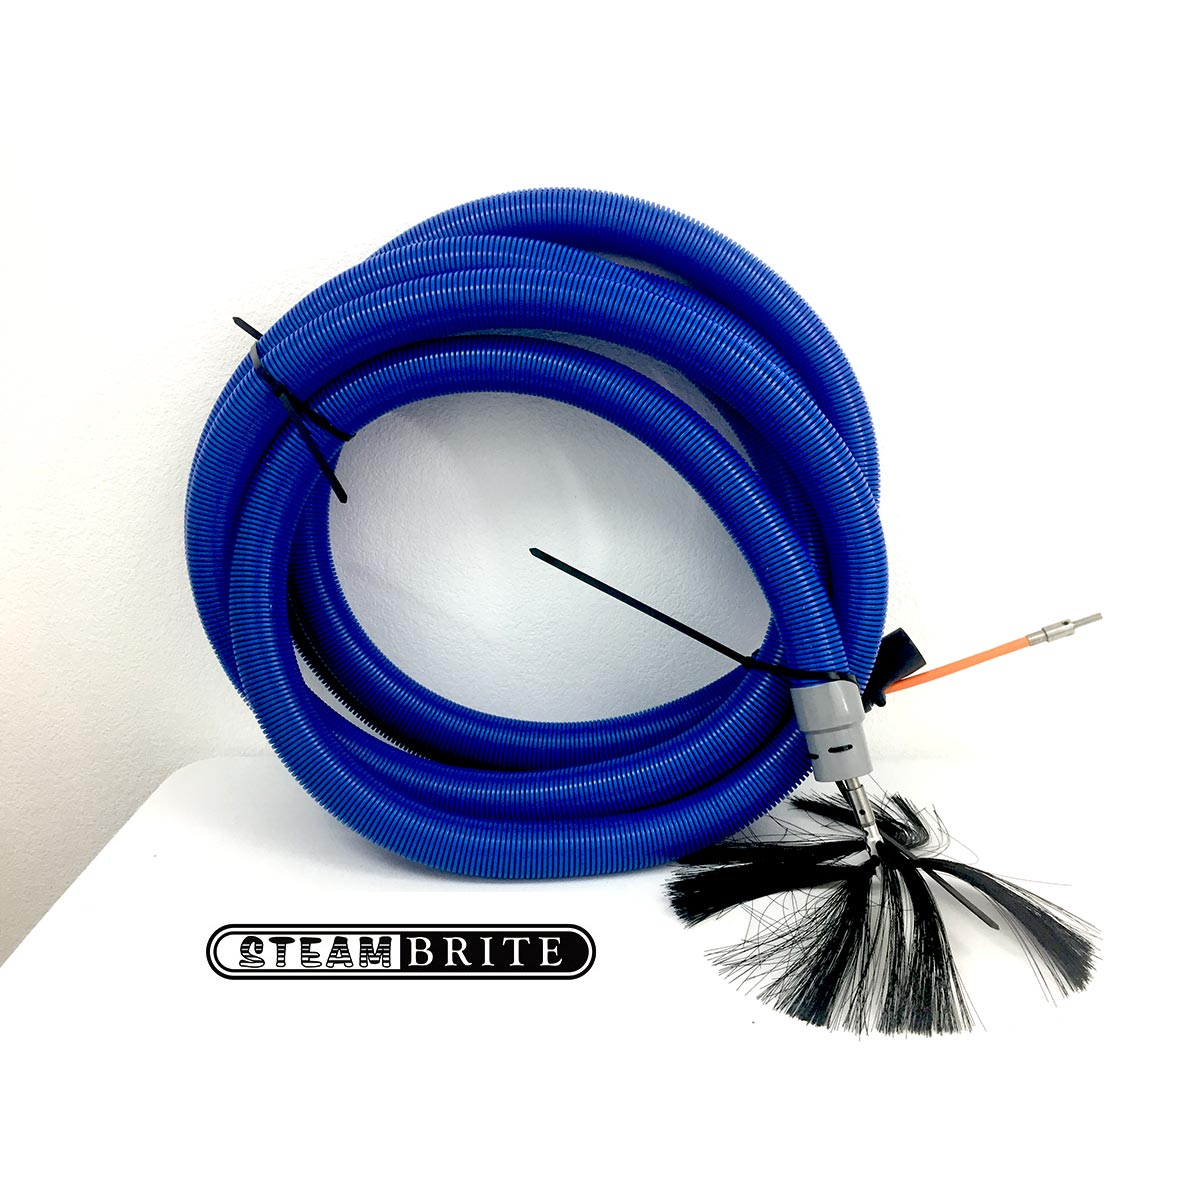 Clean Storm CE1959 Cable with 2 Inch X 33 ft Vac Hose Air Duct Cleaning Vacuum Hose 3/16 in Cable 18in Button Brush